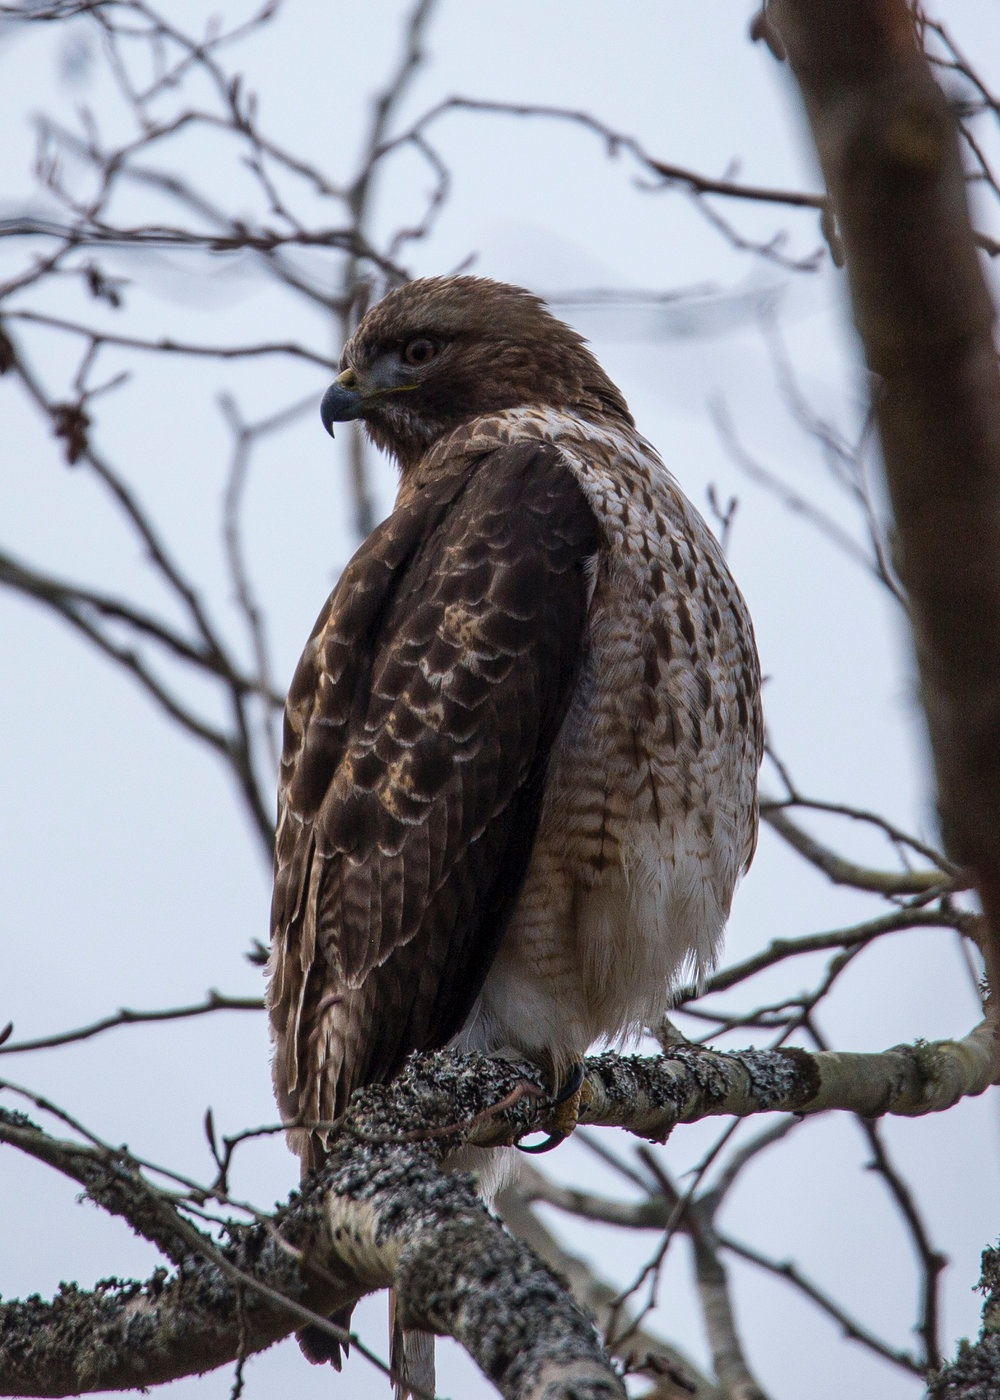 As we wandered one of the inner trails, Justine spotted a red-tailed hawk sitting in one of the lower trees.